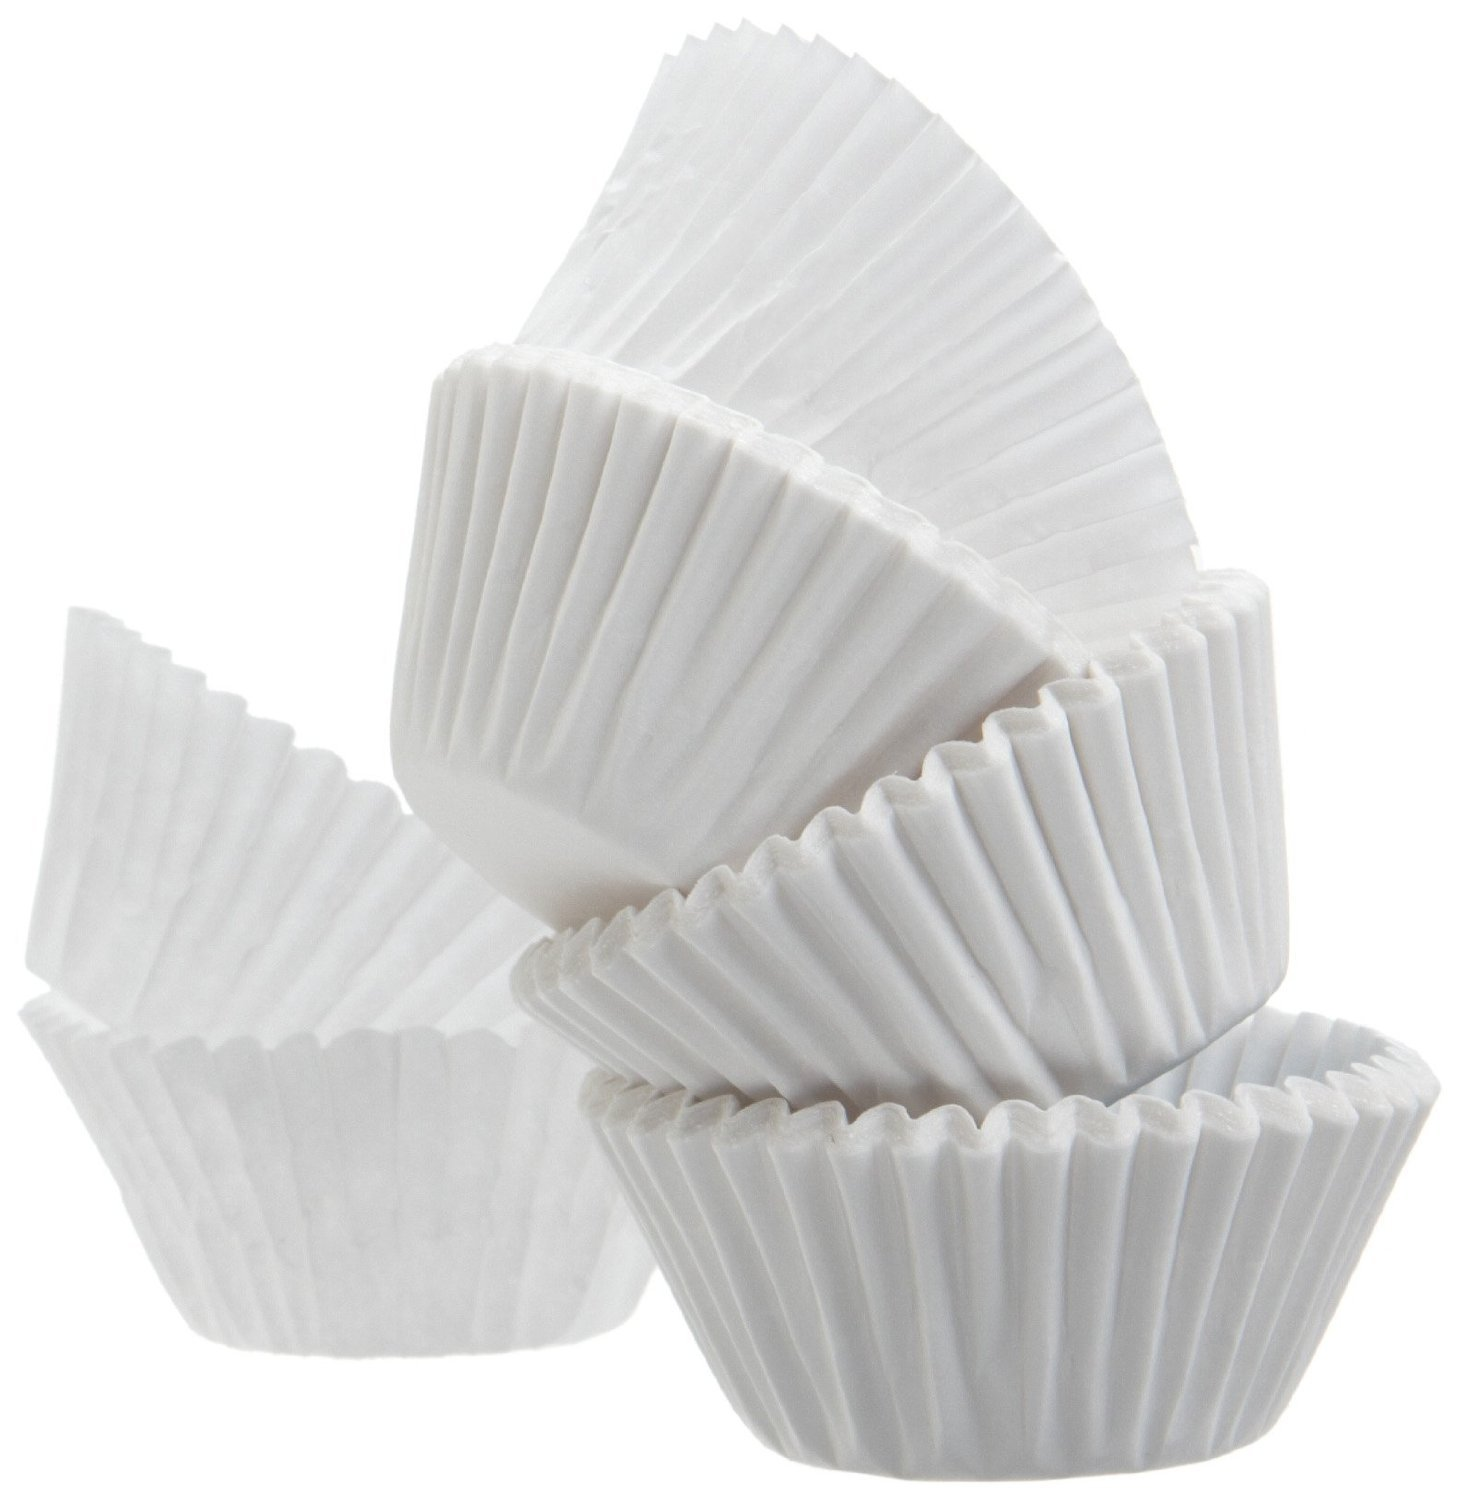 Amazon.com: A World Of Deals Best Quality Standard Size White Cupcake Paper    Baking Cup   1 Pack Cup Liners 500 Pcs: Kitchen U0026 Dining